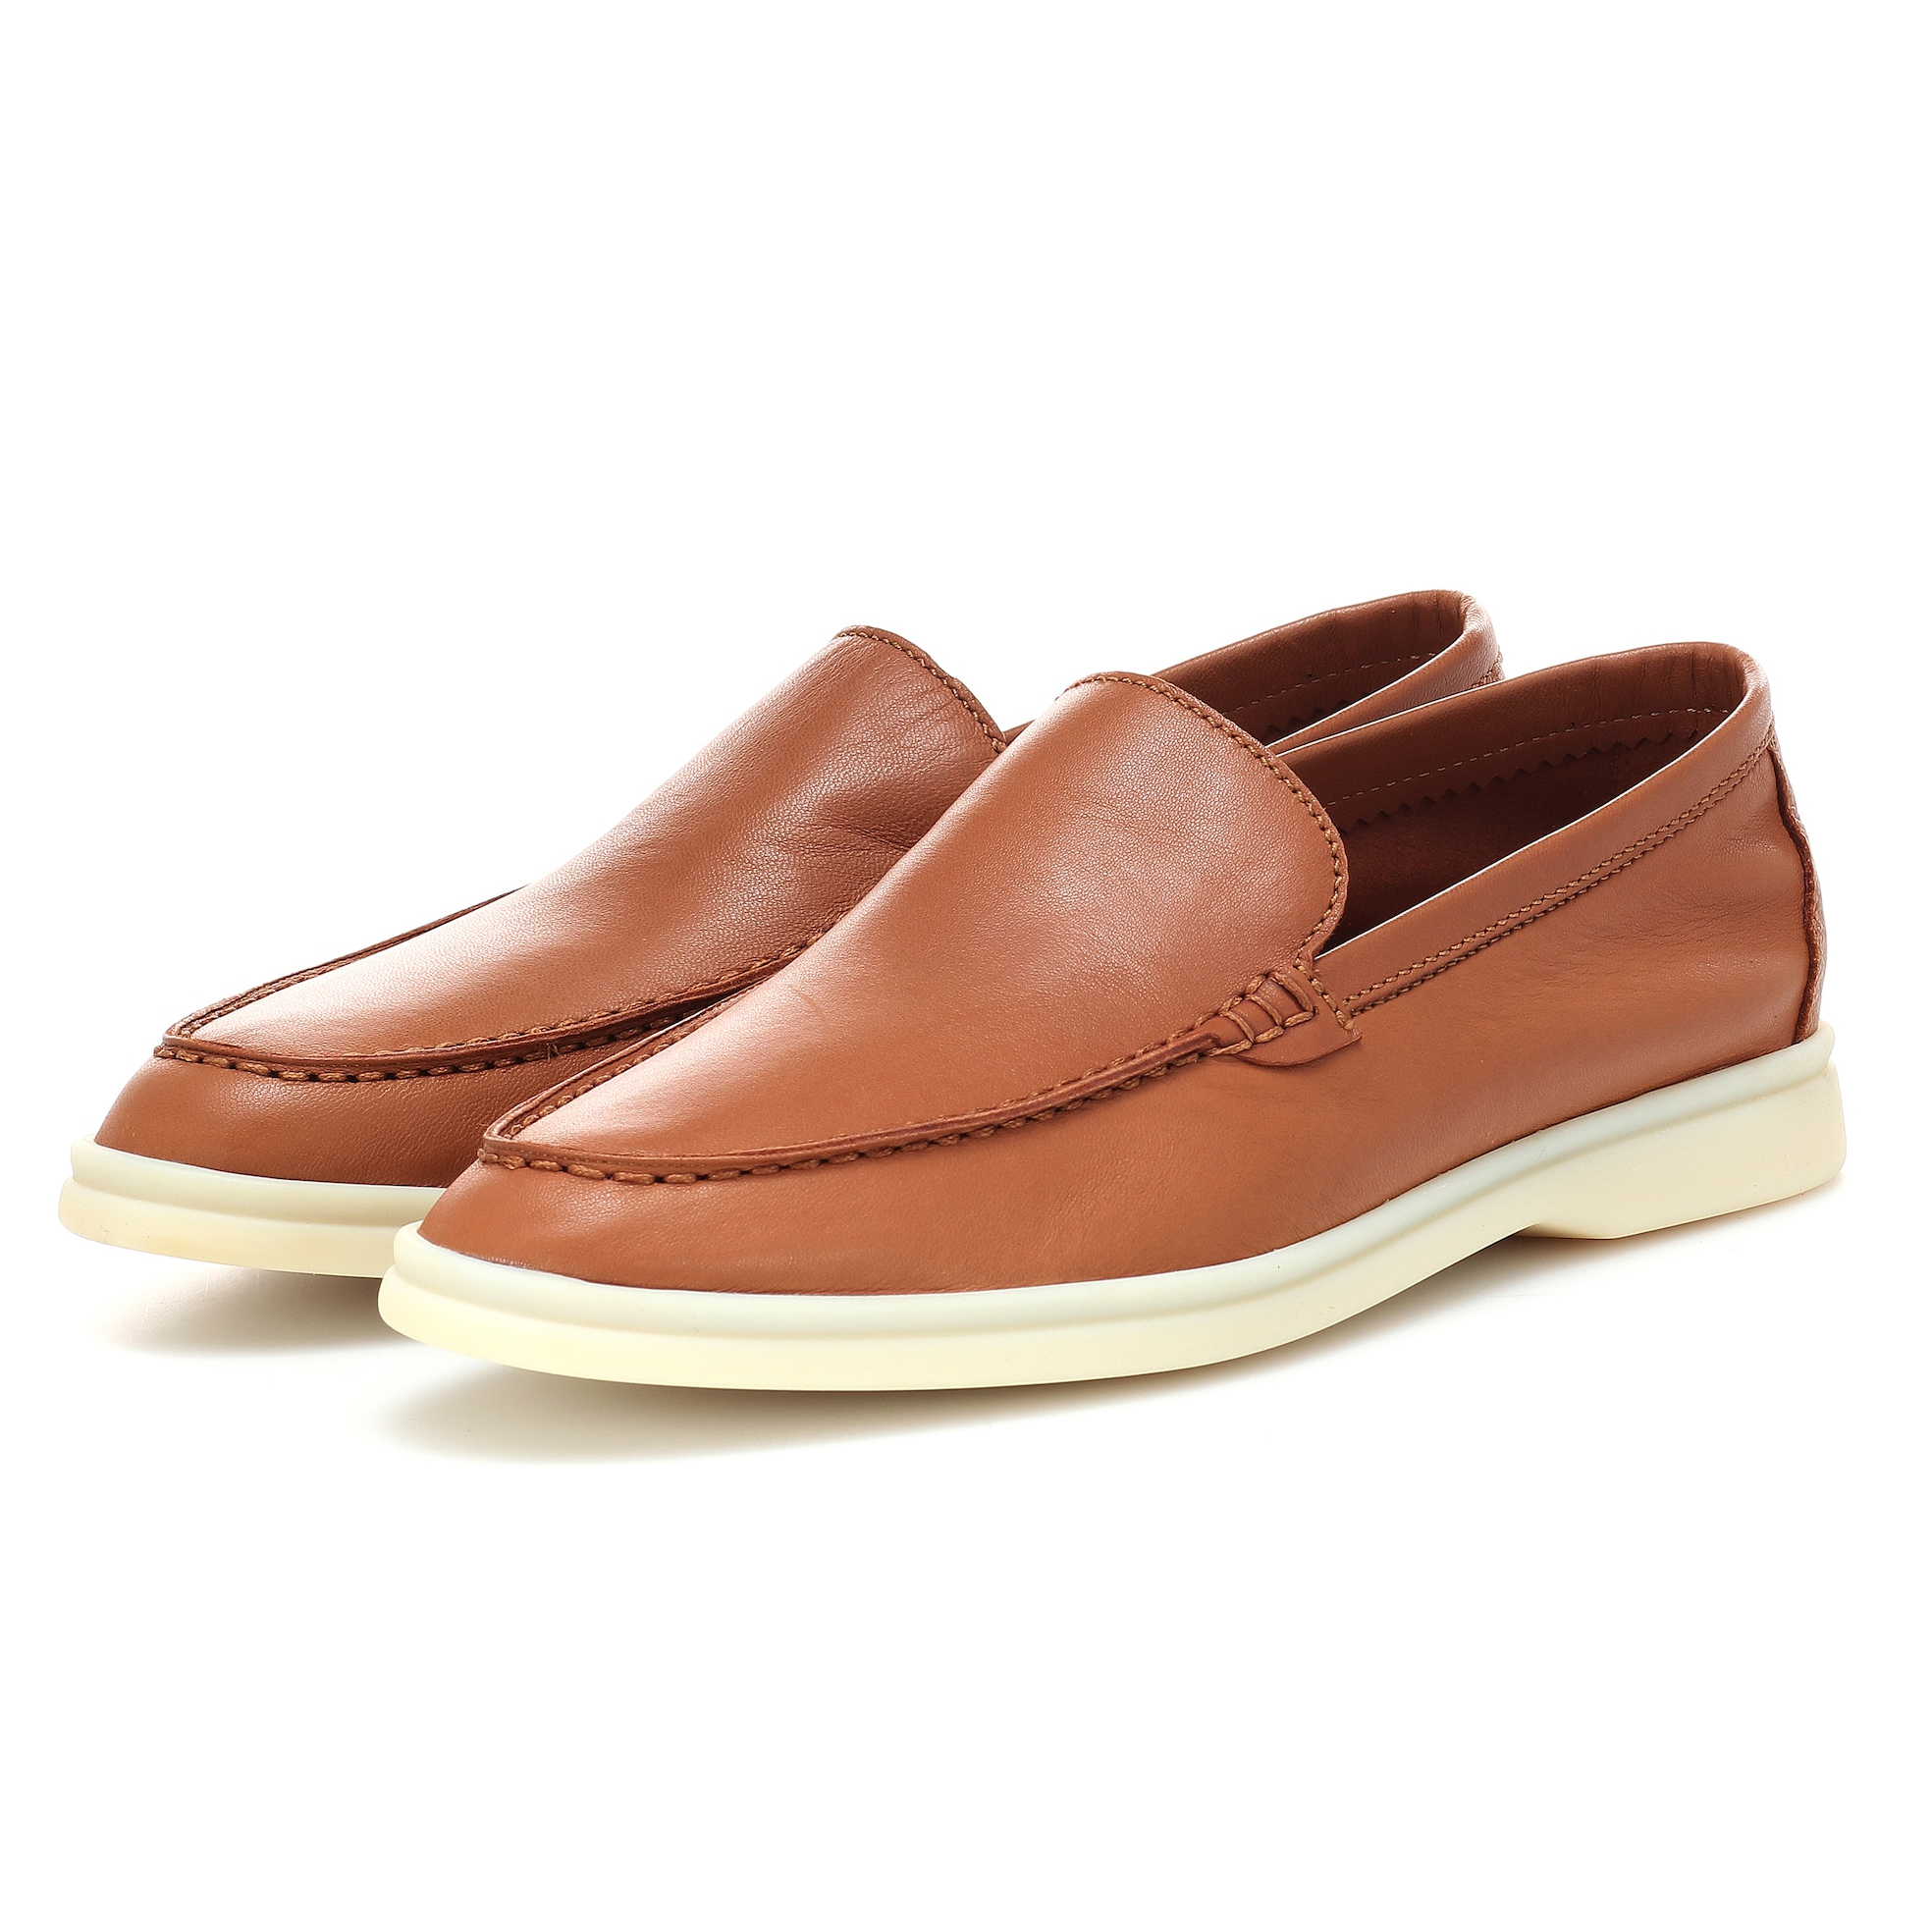 Spring Real Leather Flats Shoes Women Simple Comfortable Slip On Lazy Loafers Causal Walker Shoes Suede Driver Shoes